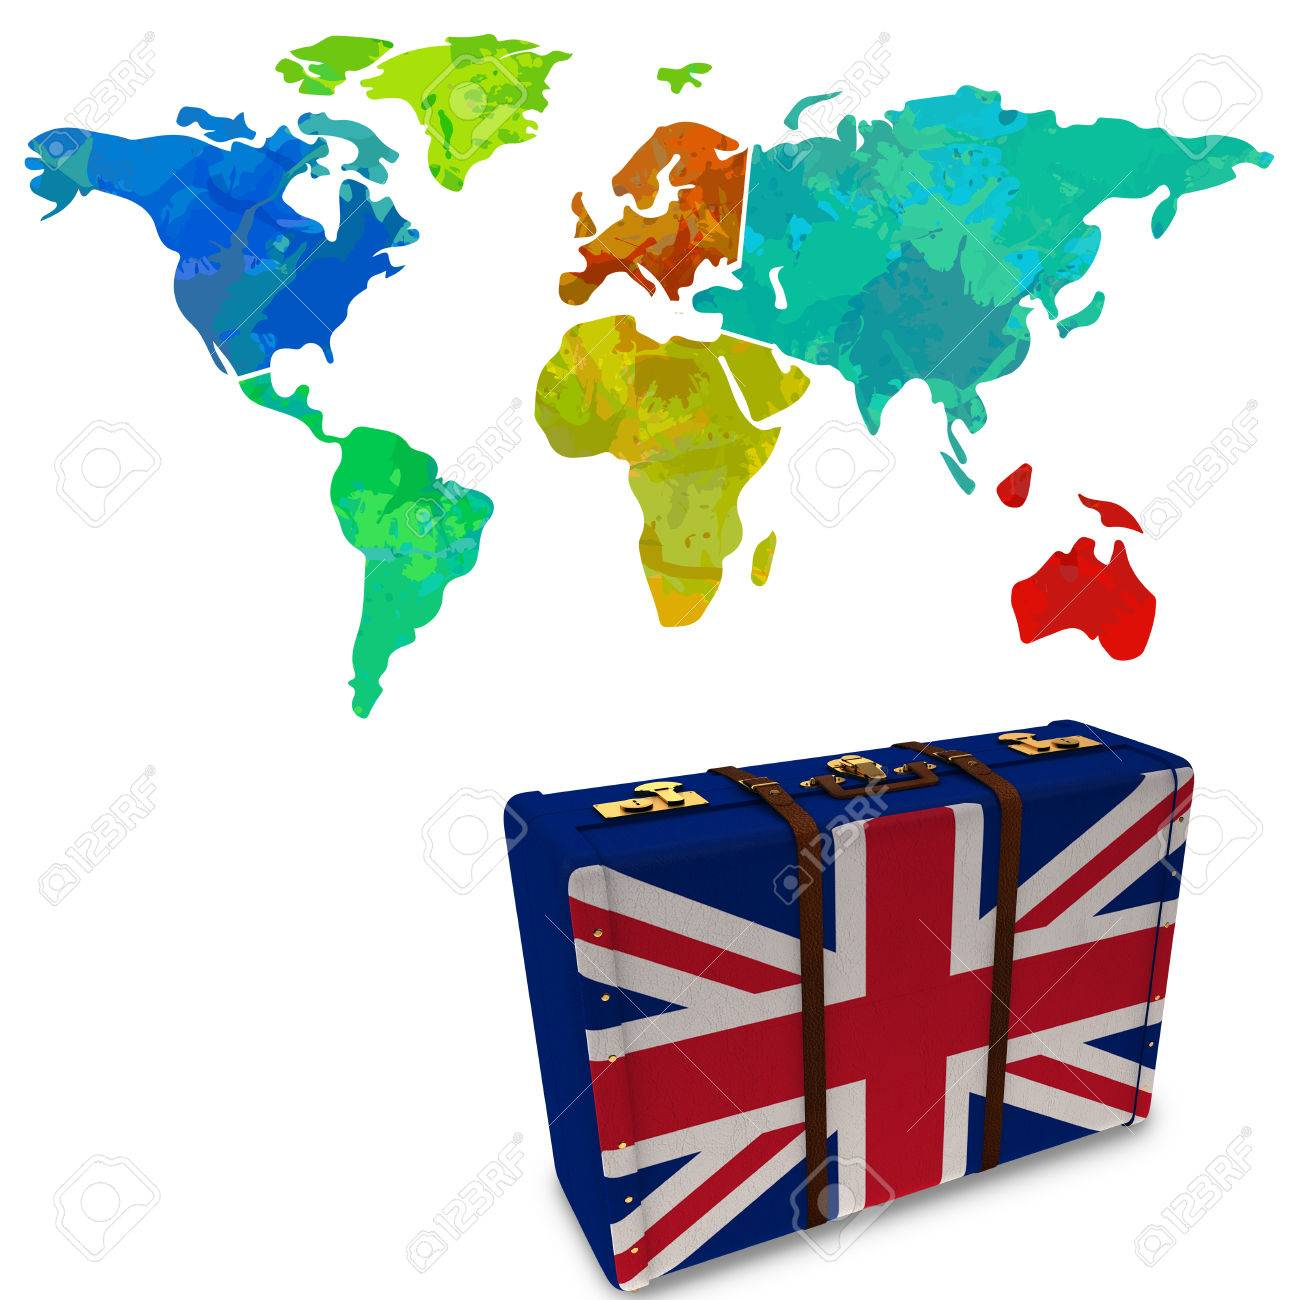 Colourful World Map Against Great Britain Flag Suitcase Stock Photo